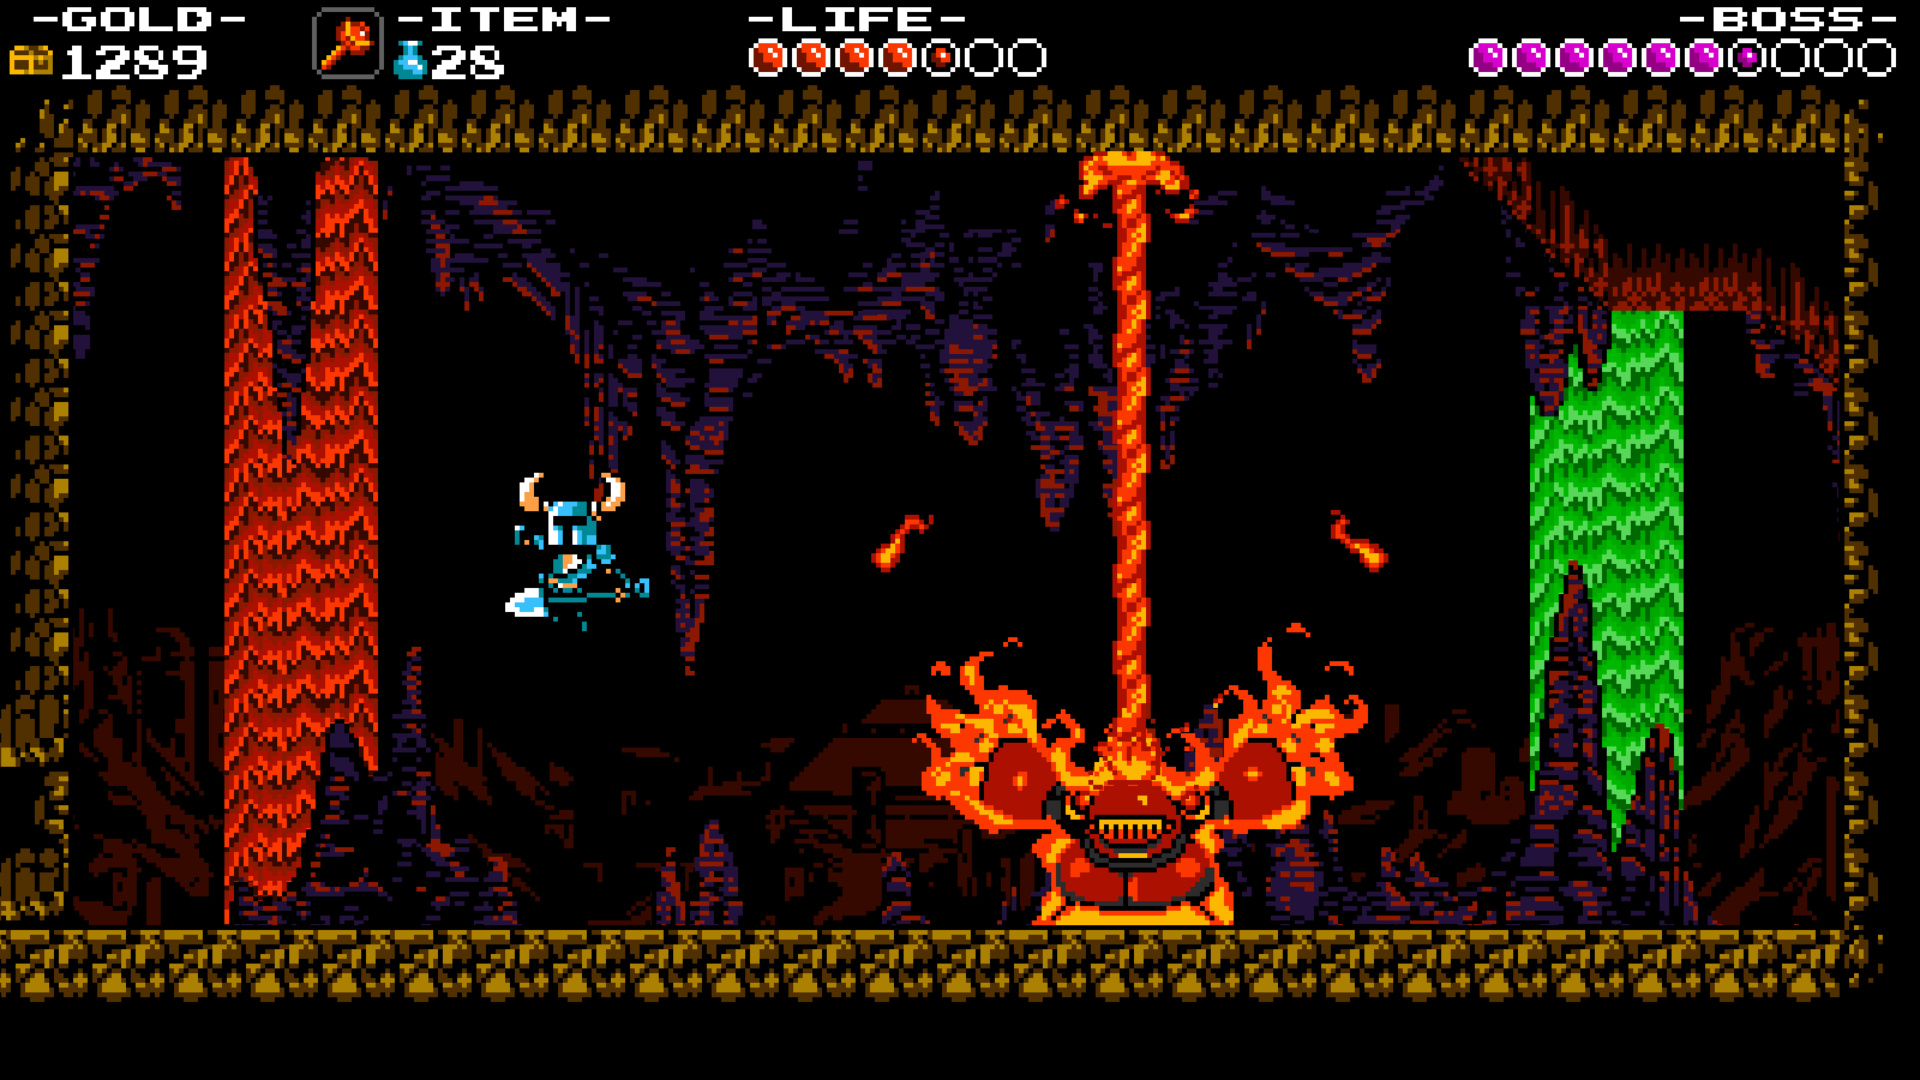 playstation vita shovel knight screenshots shovel knight screenshots